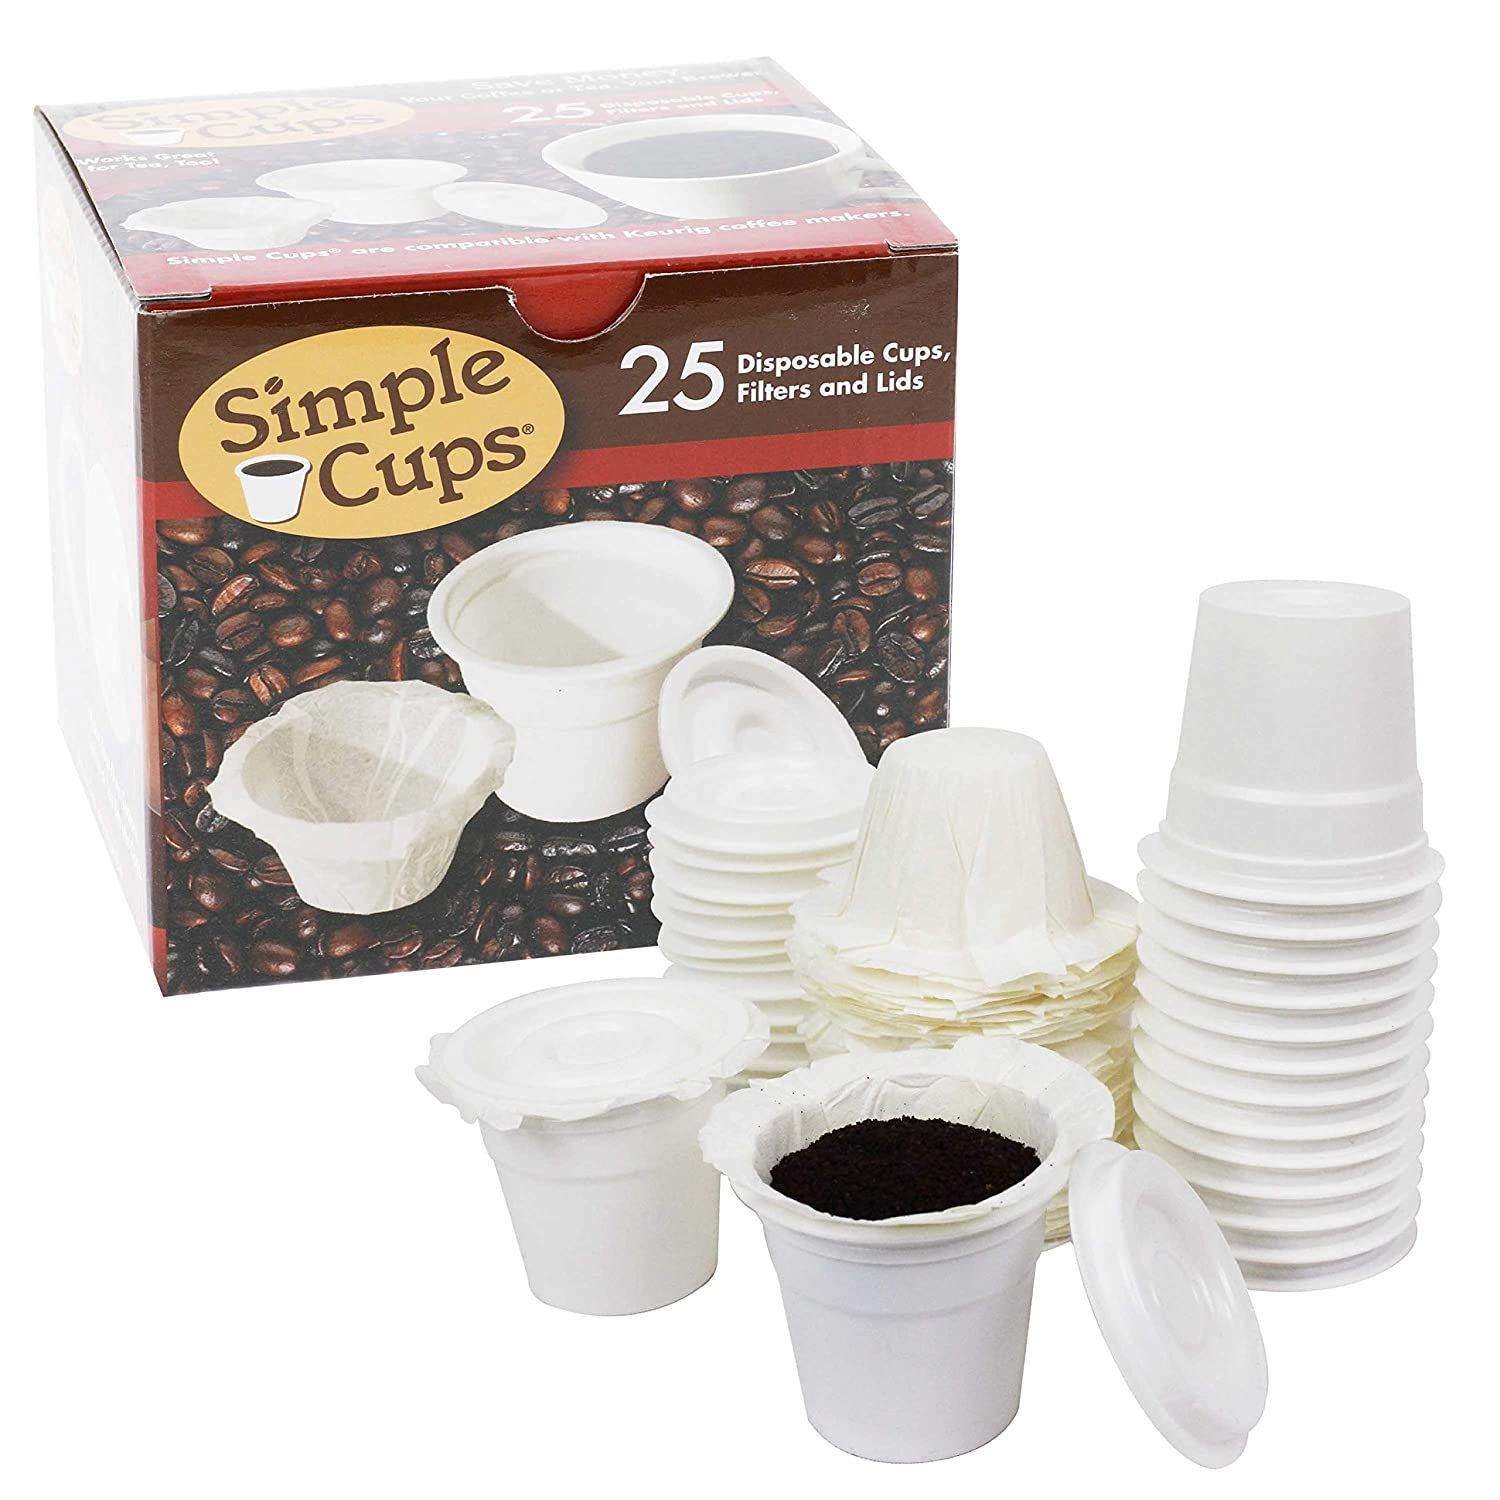 Disposable Cups for Use in Keurig® Brewers - Simple Cups - 25 Cups, Lids, Filters with Easy Close Stand - Use Your Own Coffee